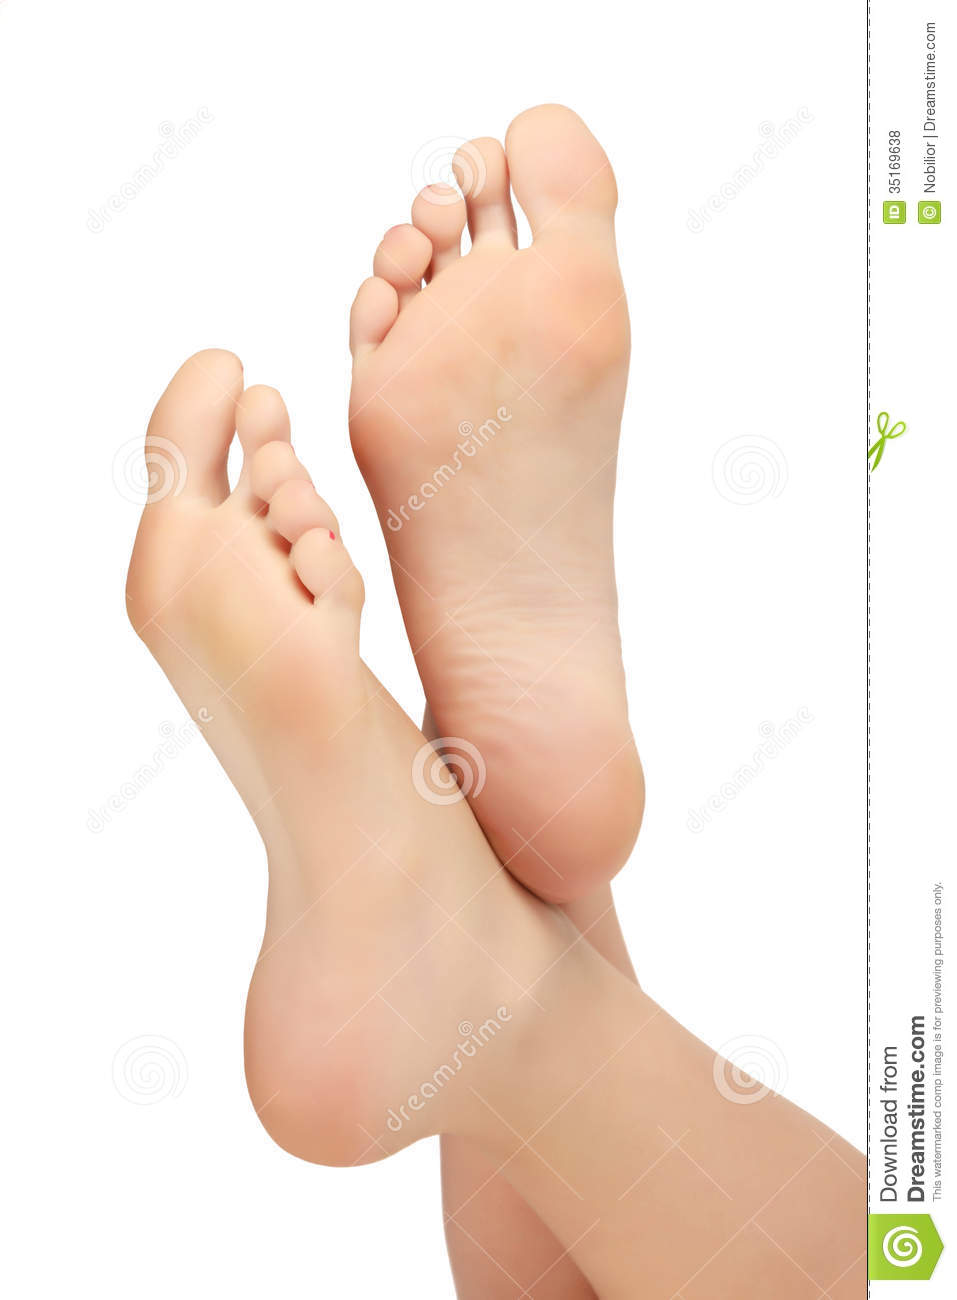 healthy female feet stock photo. image of chiropody, natural - 35169638